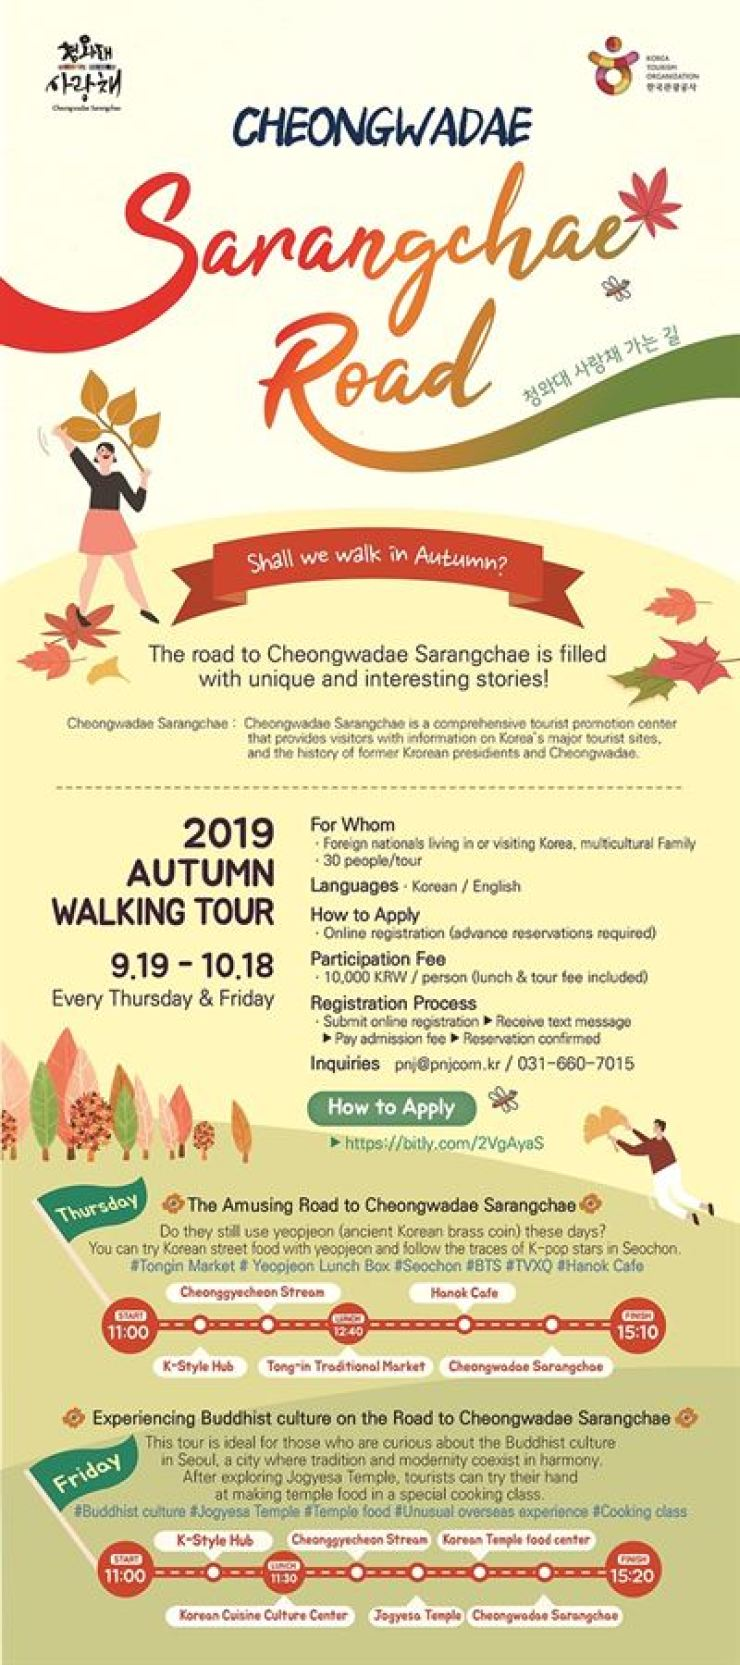 A poster of Cheongwadae Sarangchae Road walking tour / Courtesy of Korea Tourism Organization